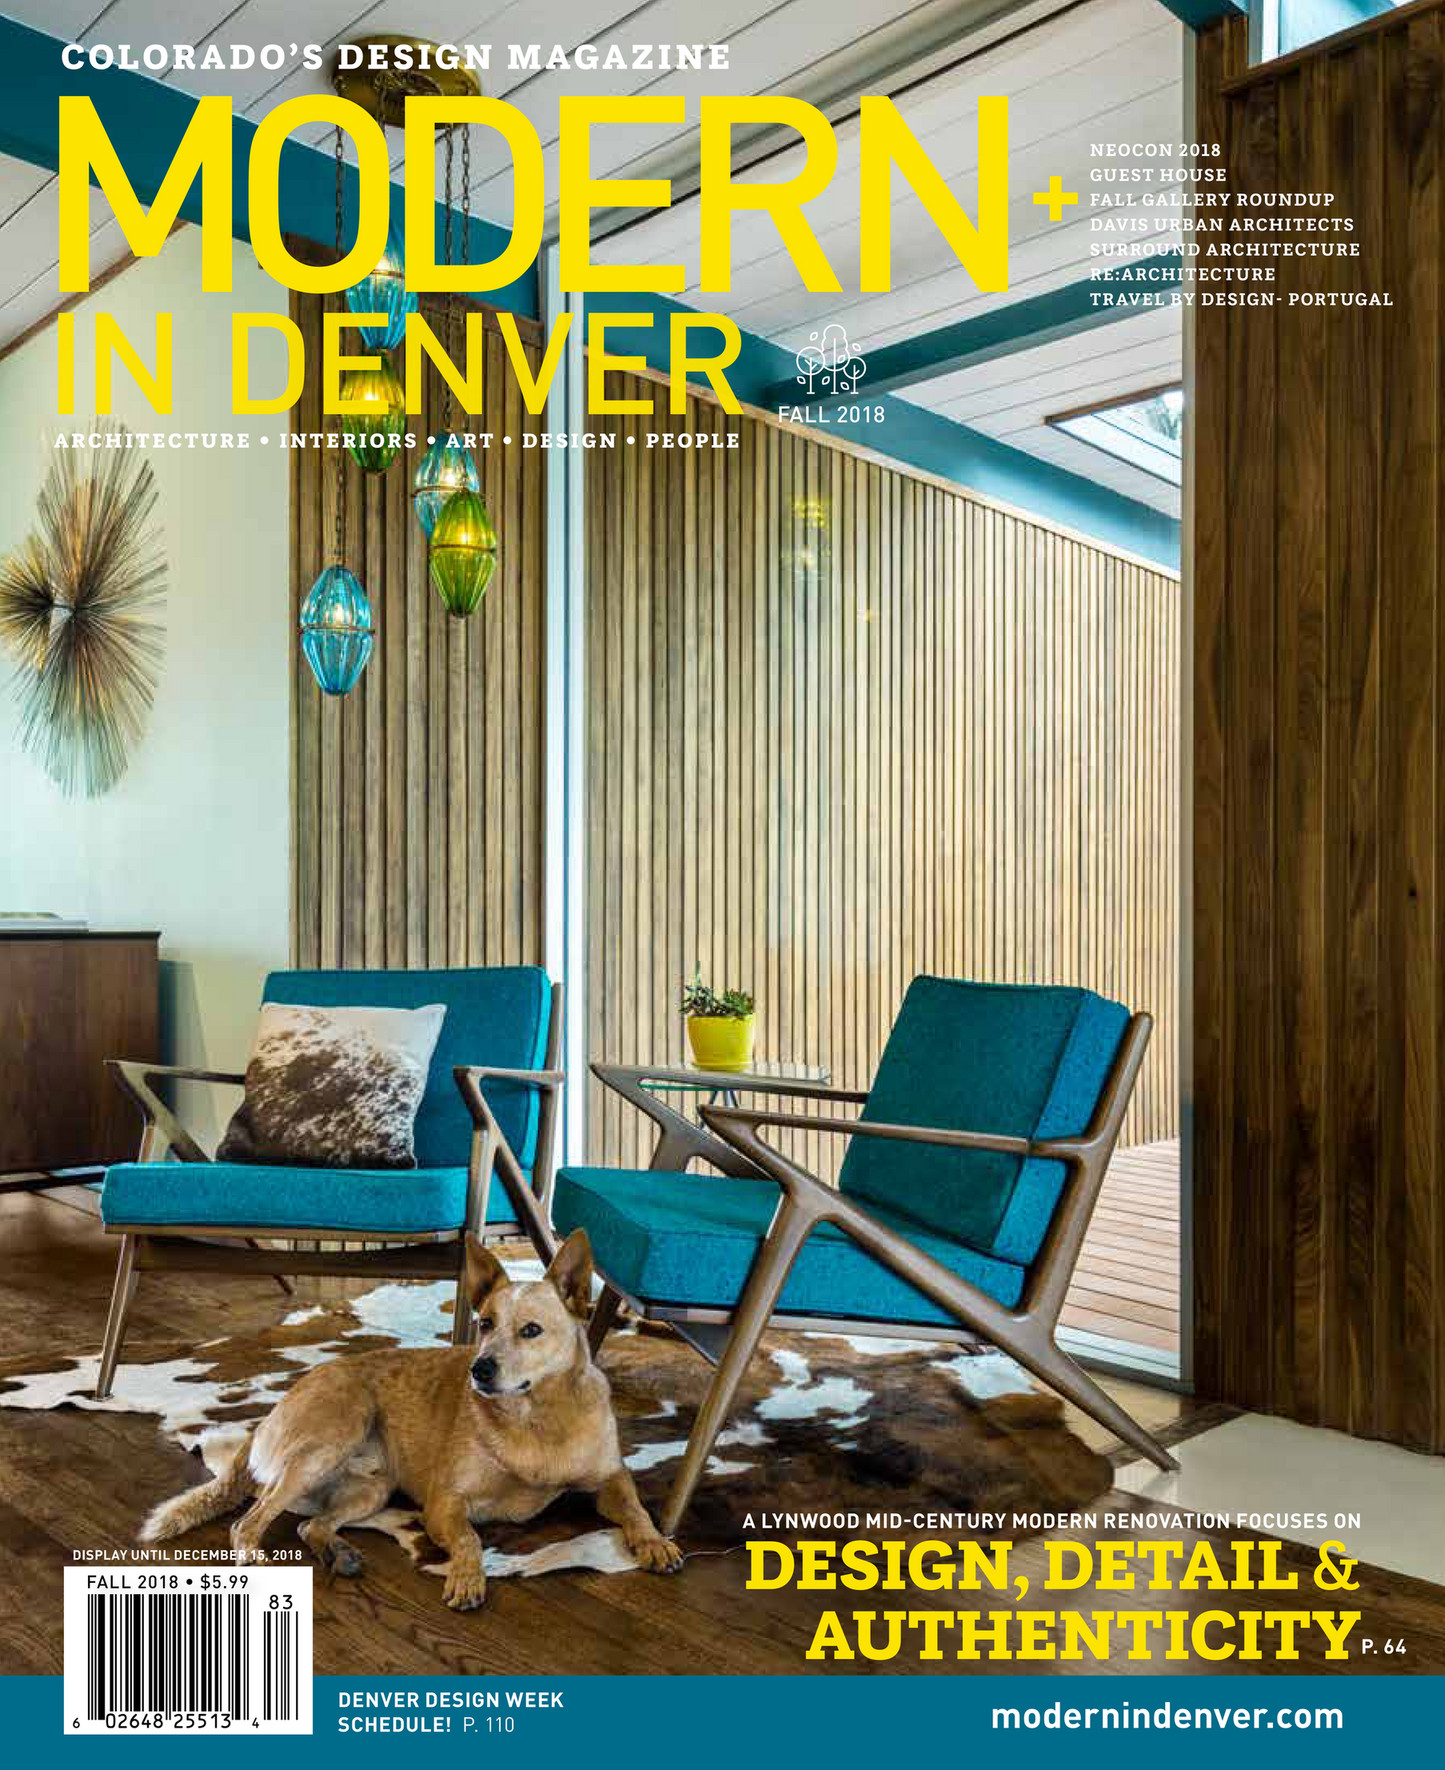 Modern In Denver - Modern In Denver - Fall 2018 - Page 70-71